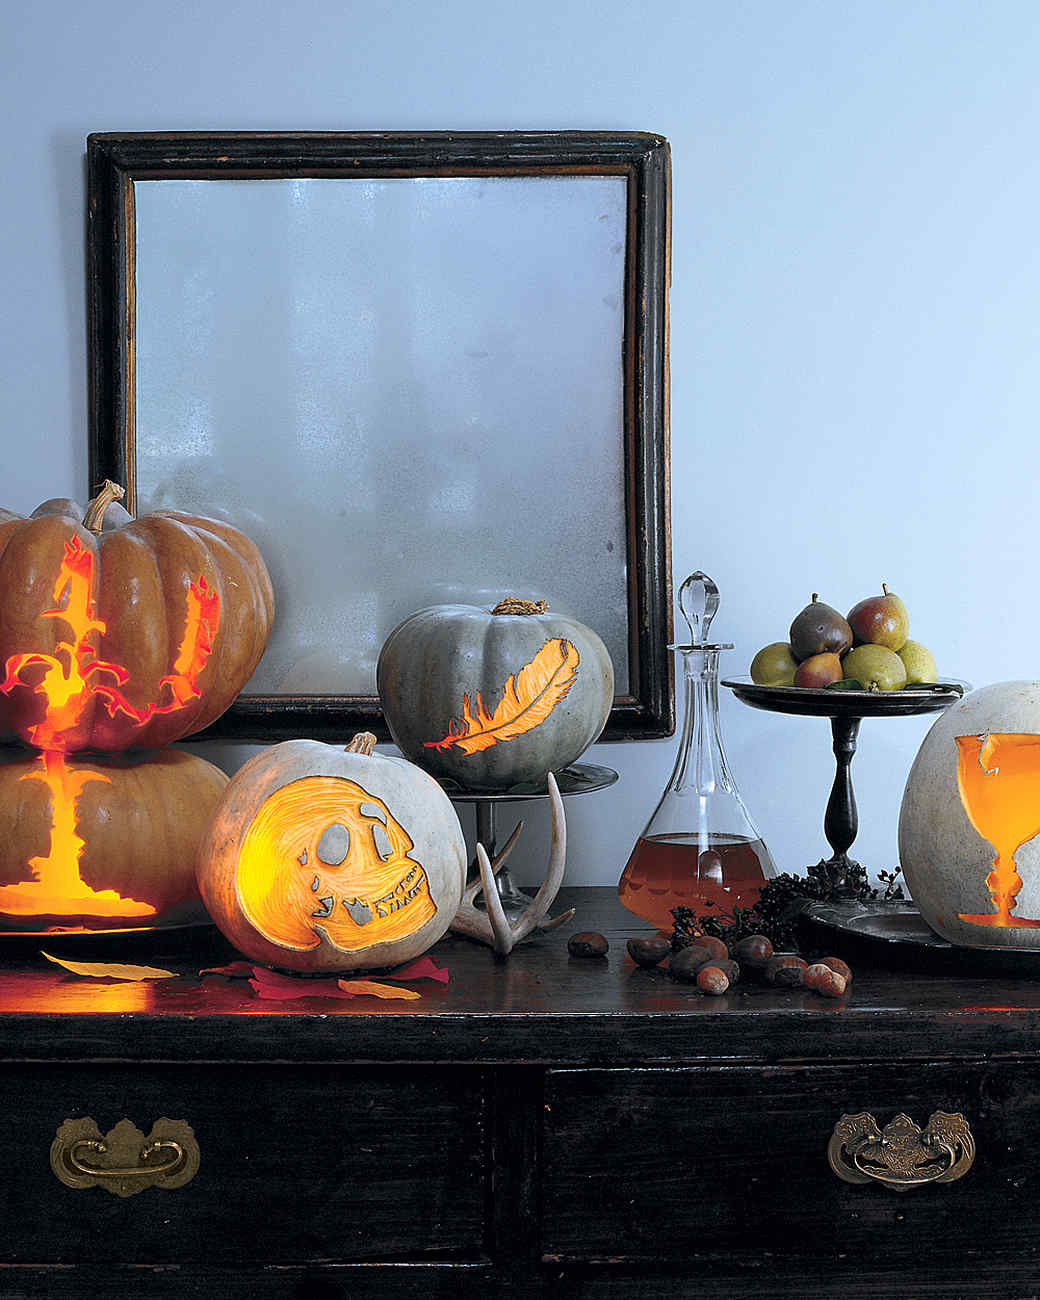 Pumpkins with Scary Etched Silhouettes